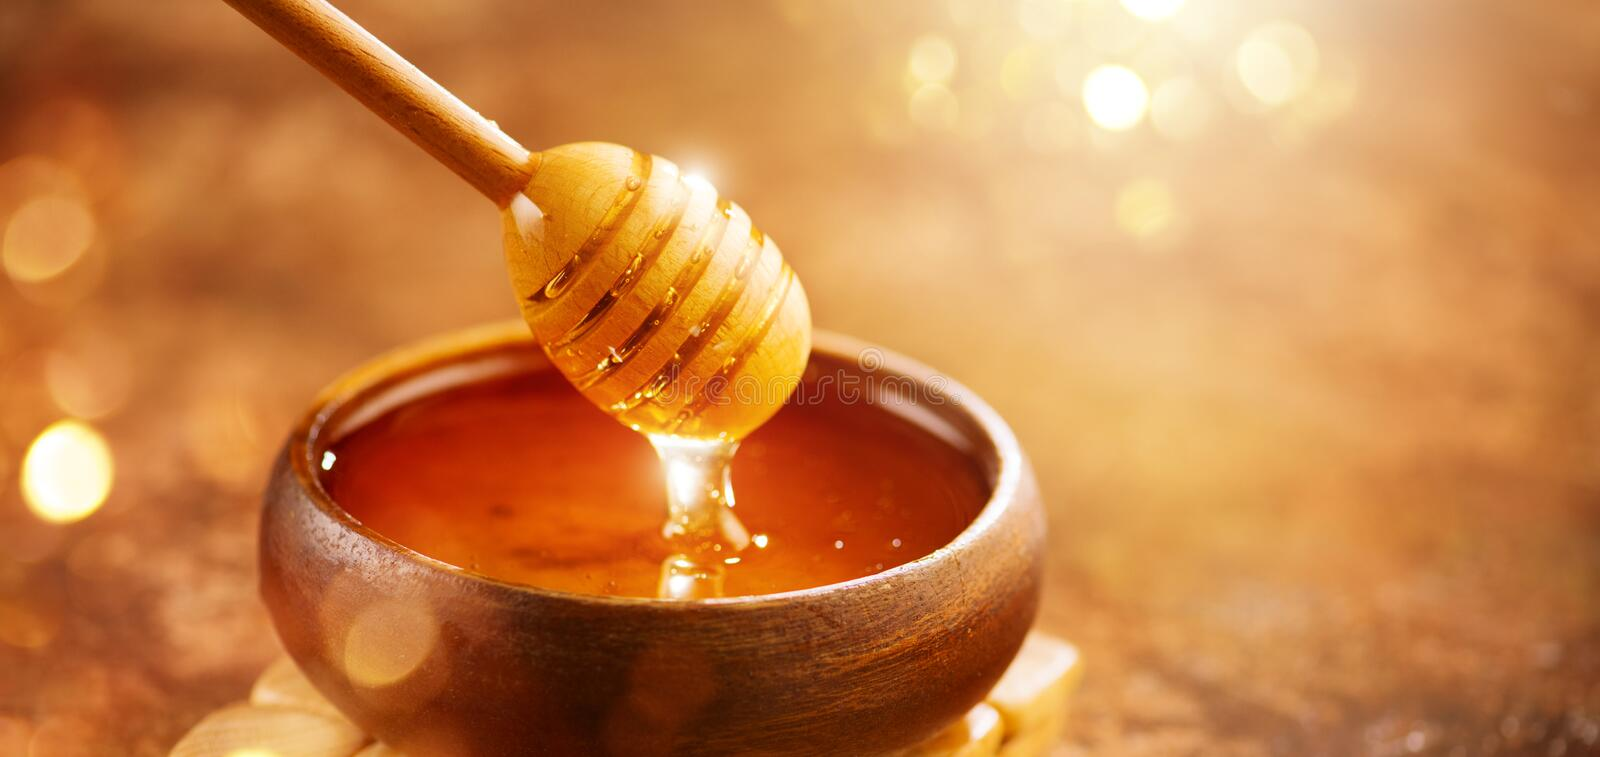 Honey. Healthy organic thick honey dripping from the honey dipper in wooden bowl. Sweet dessert. Background stock photo